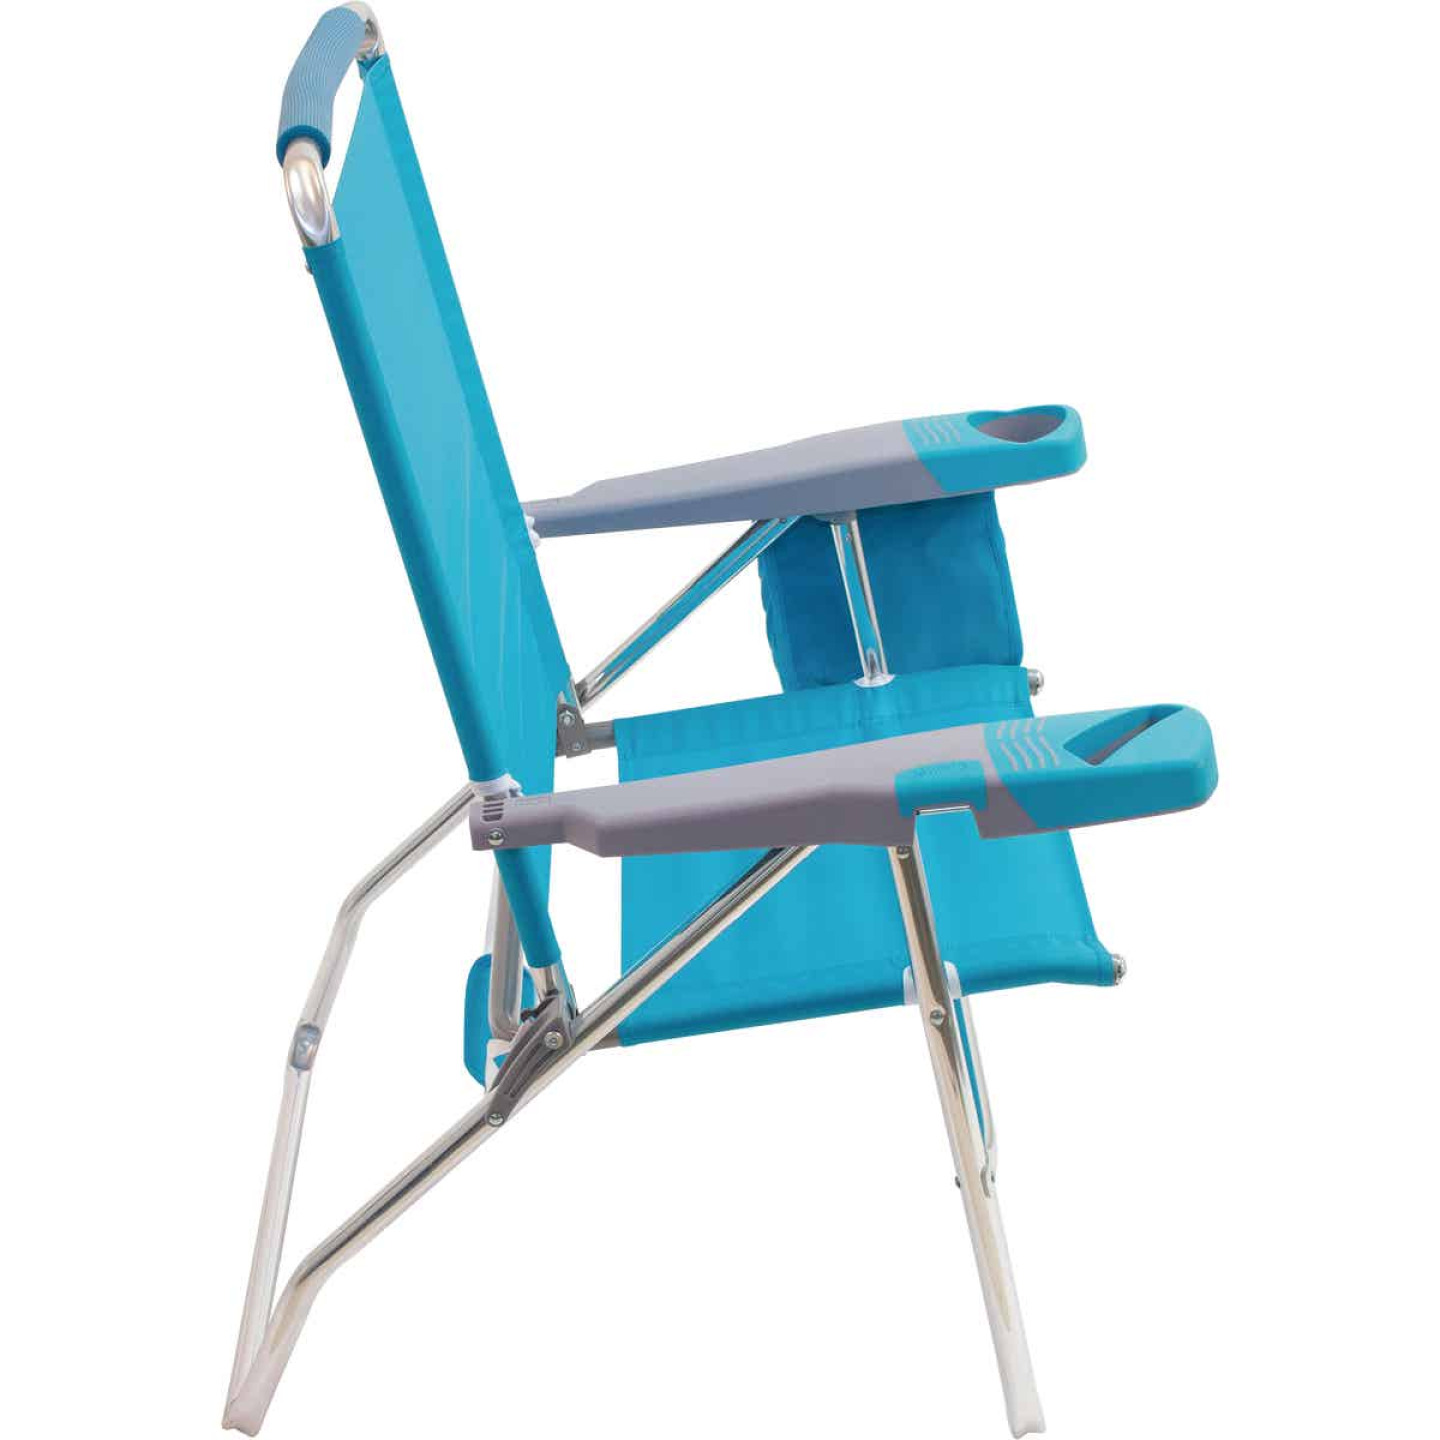 Rio Brands 4-Position Aluminum Folding Beach Chair with Cooler Image 6